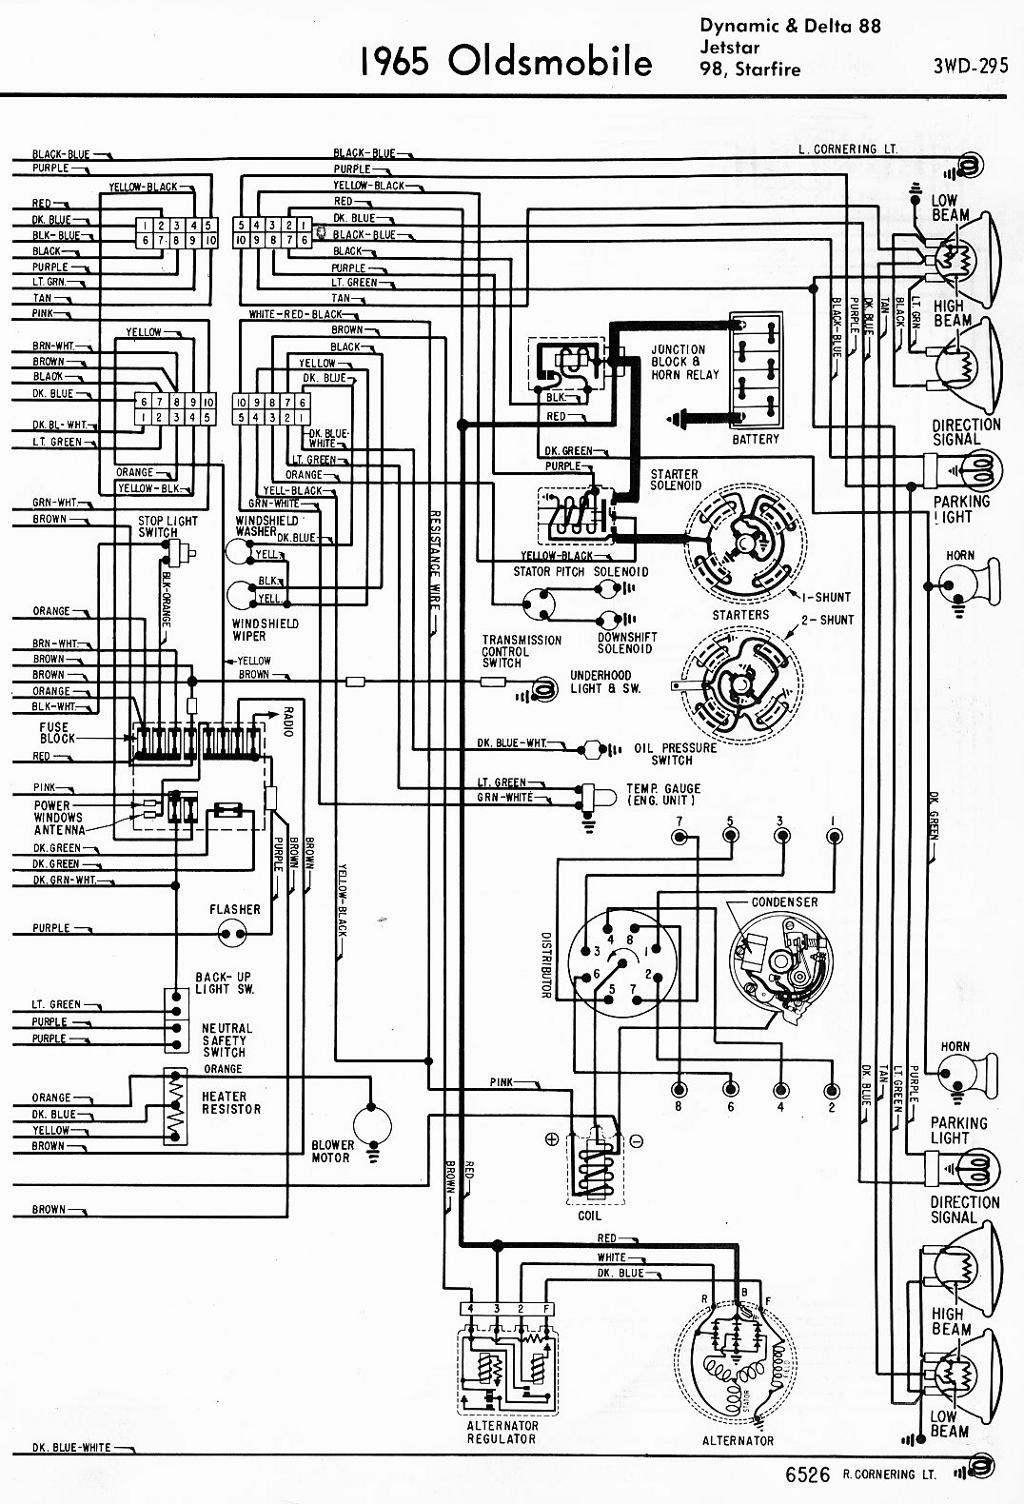 1999 Oldsmobile 88 Wiring Diagram Guide And Troubleshooting Of 1937 Ford Ignition Third Level Rh 14 17 12 Jacobwinterstein Com Silhouette Vat